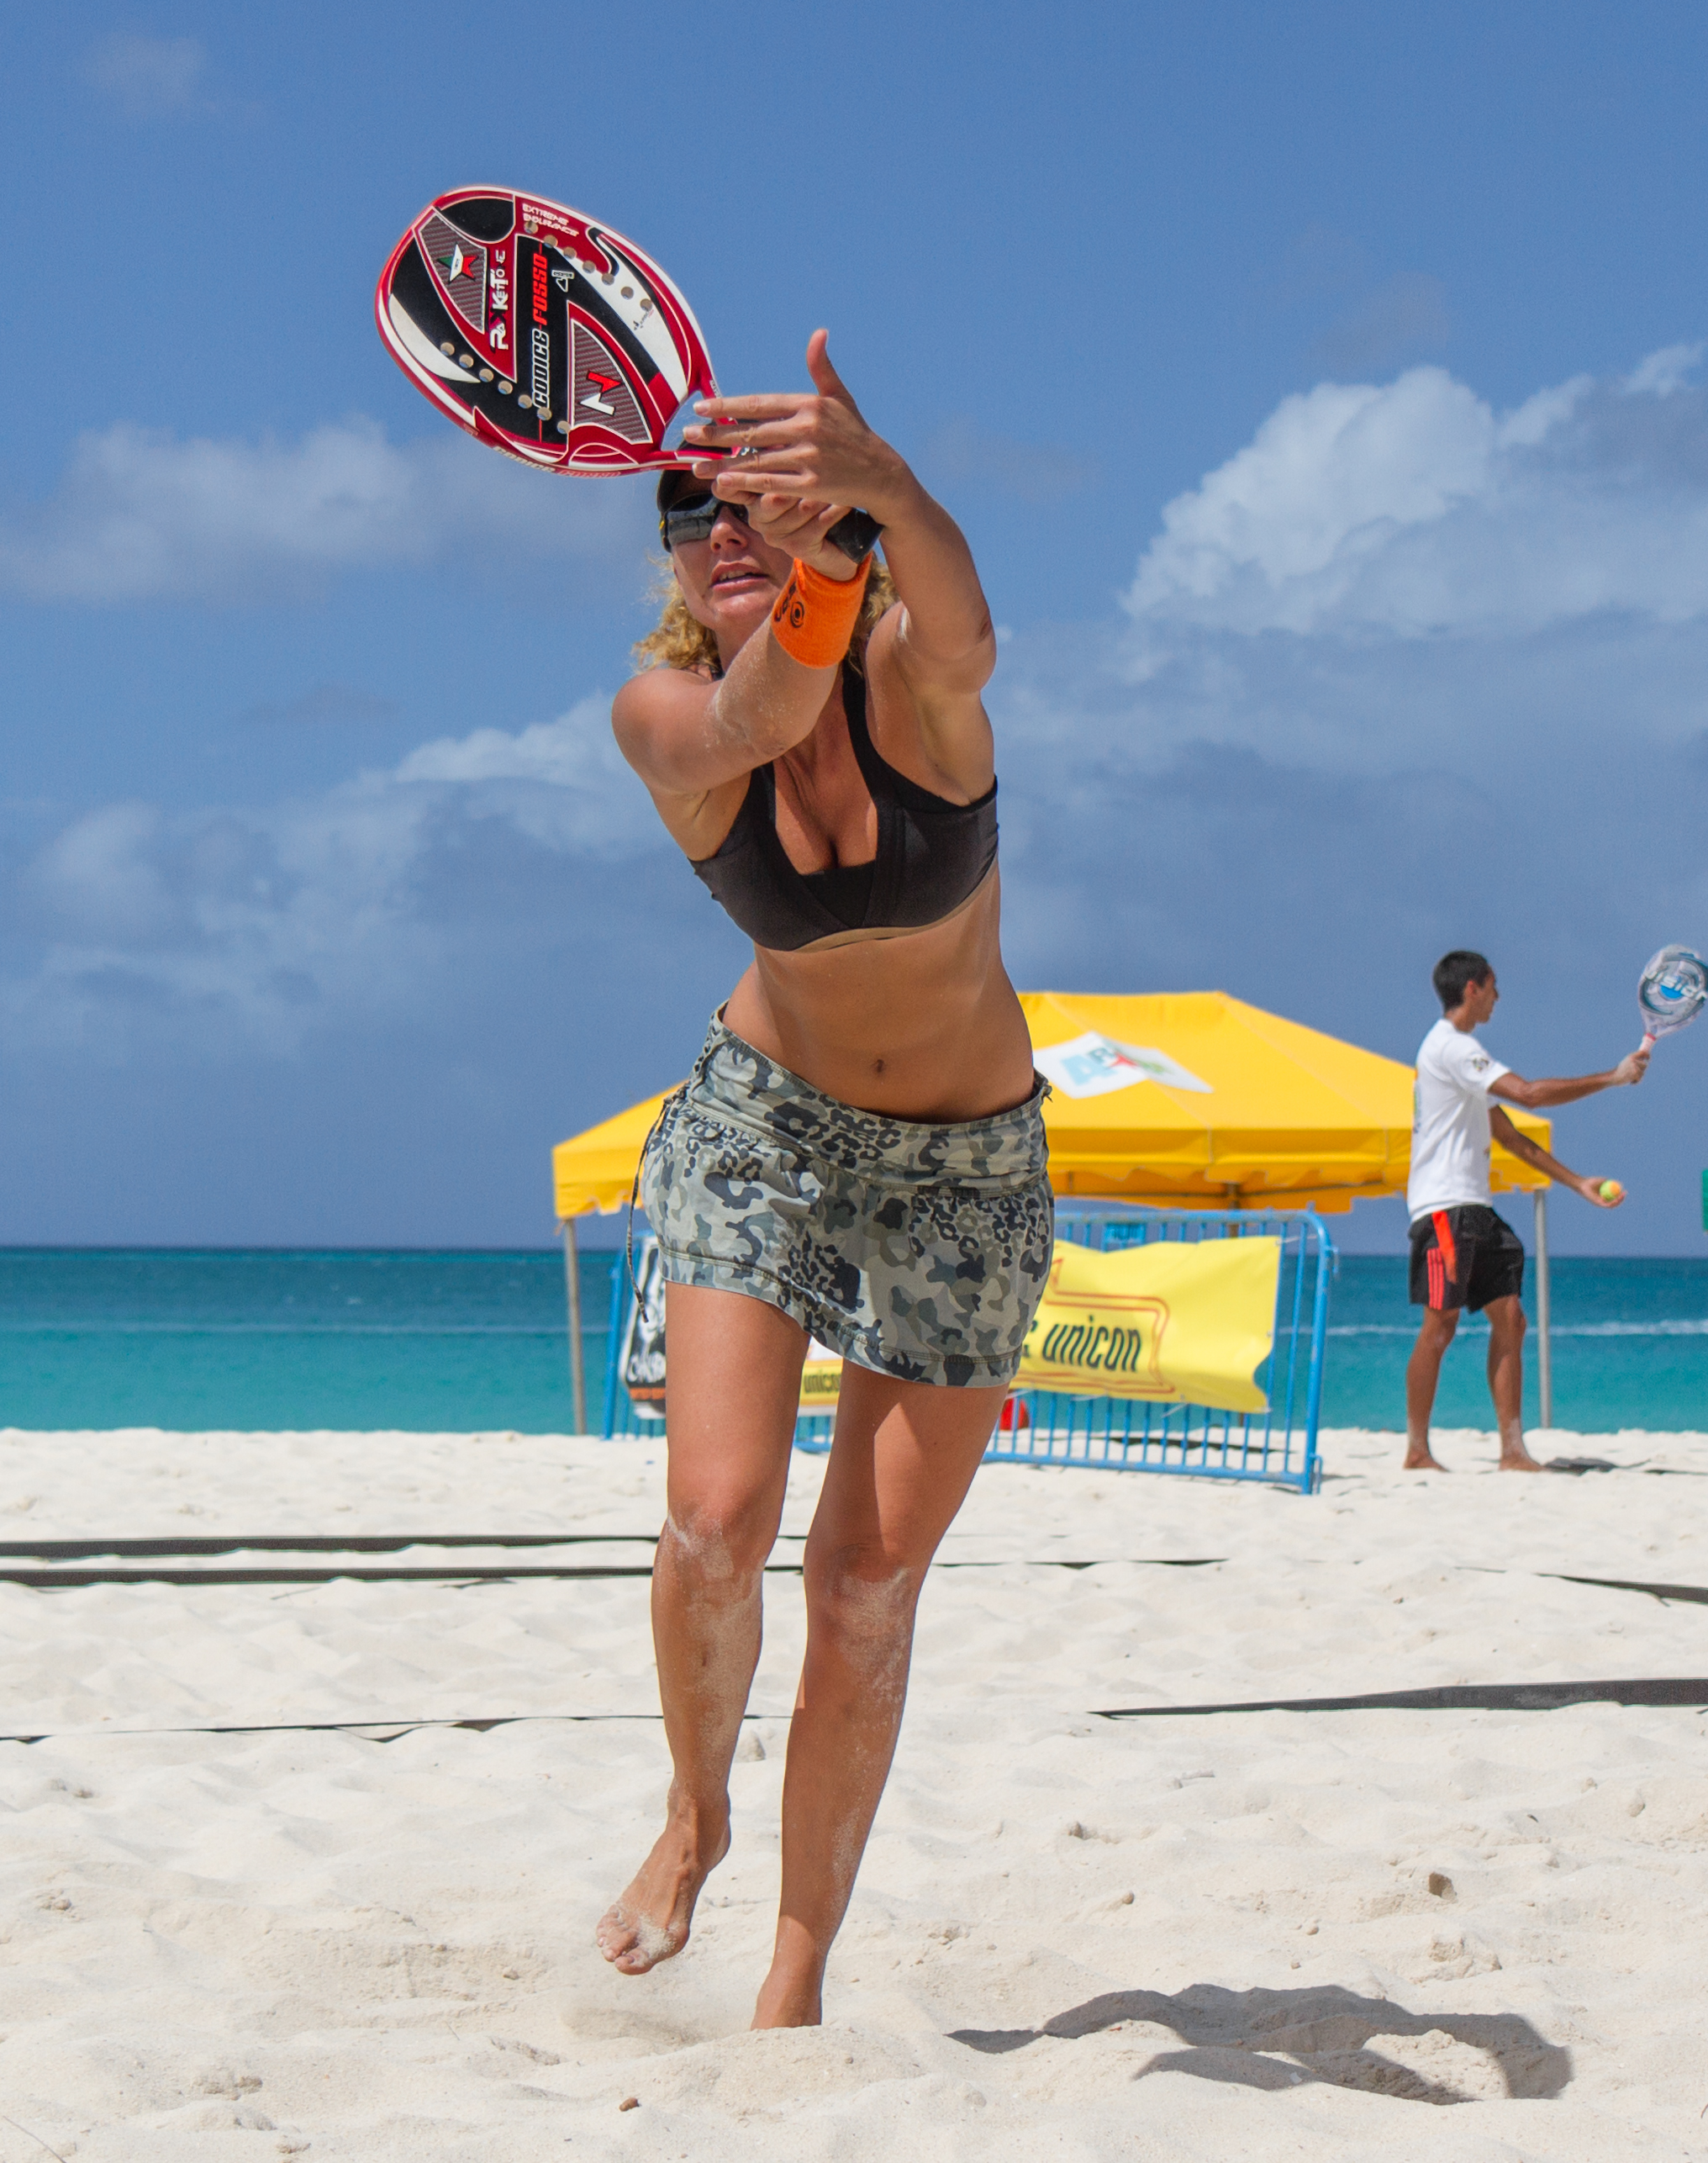 IMG_6558-6.jpg Beach Tennis in Aruba